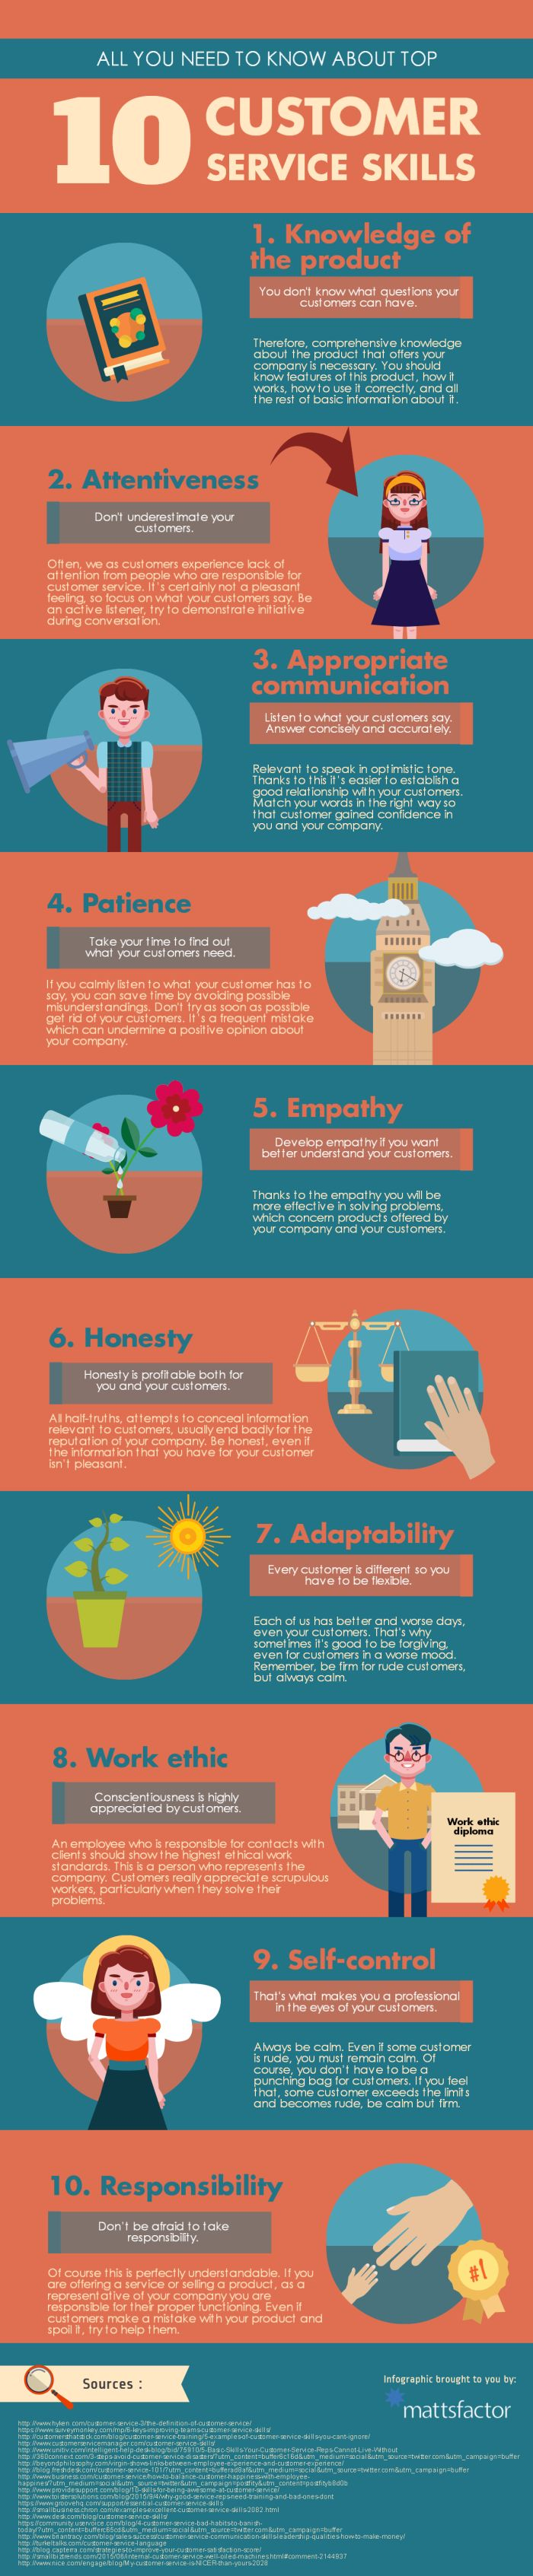 17 best ideas about customer service customer all you need to know about top 10 customer service skills infographic visualistan